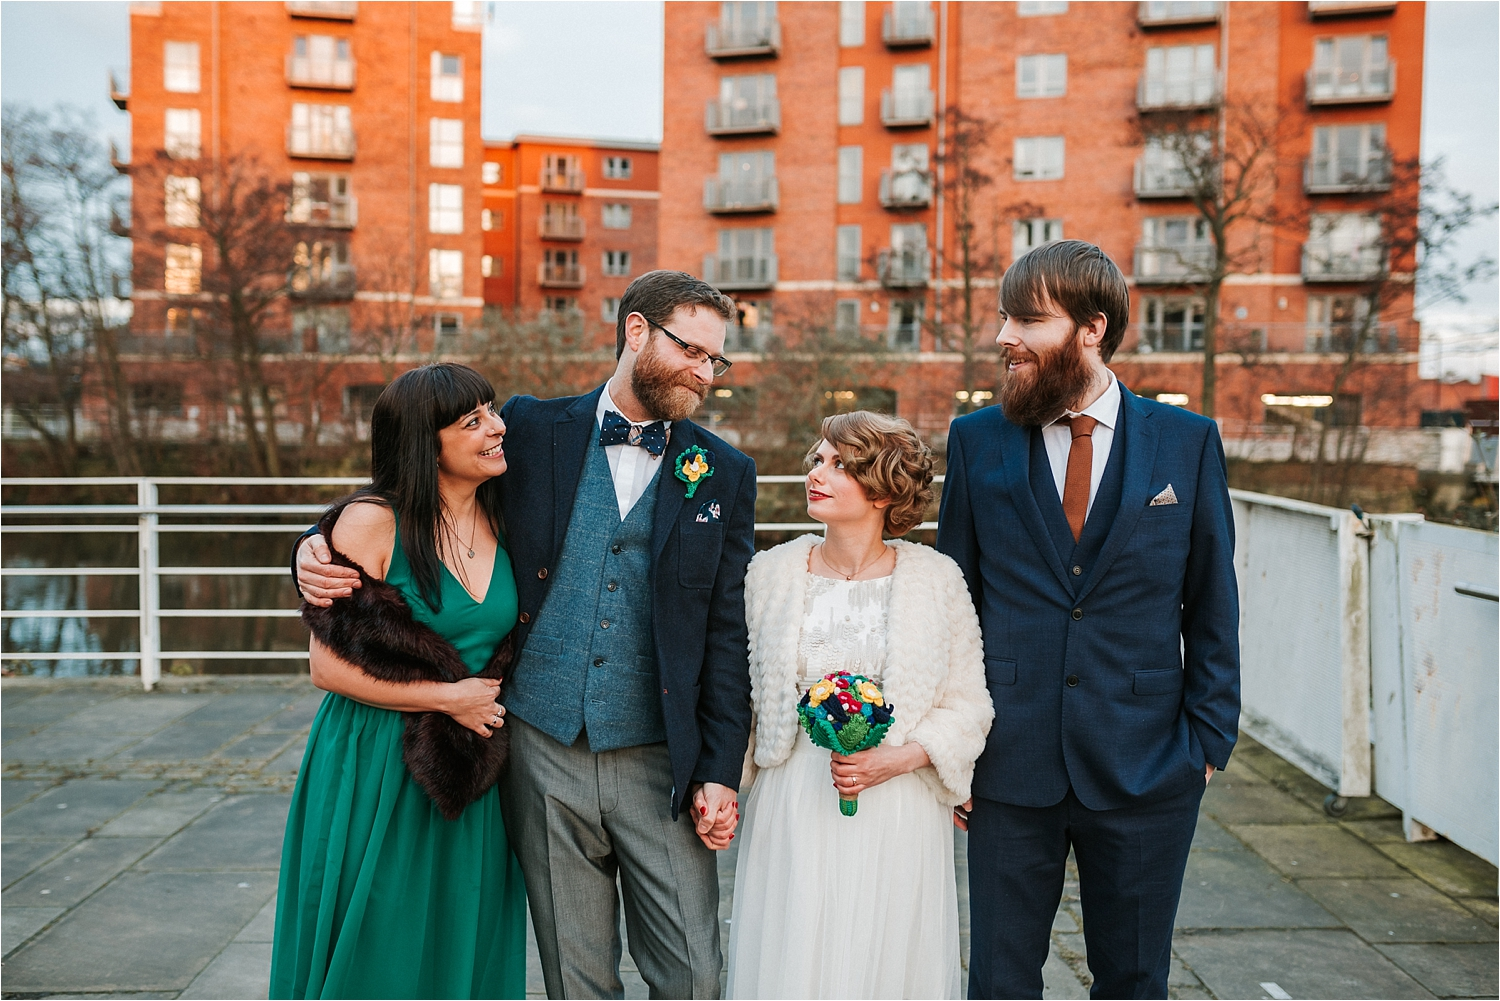 Victoria-Ben-The-West-Mill-darley-abbey-natural-relaxed-documentary-wedding-photography-photographer-Derby-Nottingham-Derbyshire-Nottinghamshire-Leicestershire-Lincolnshire-East-Midlands_0149.jpg